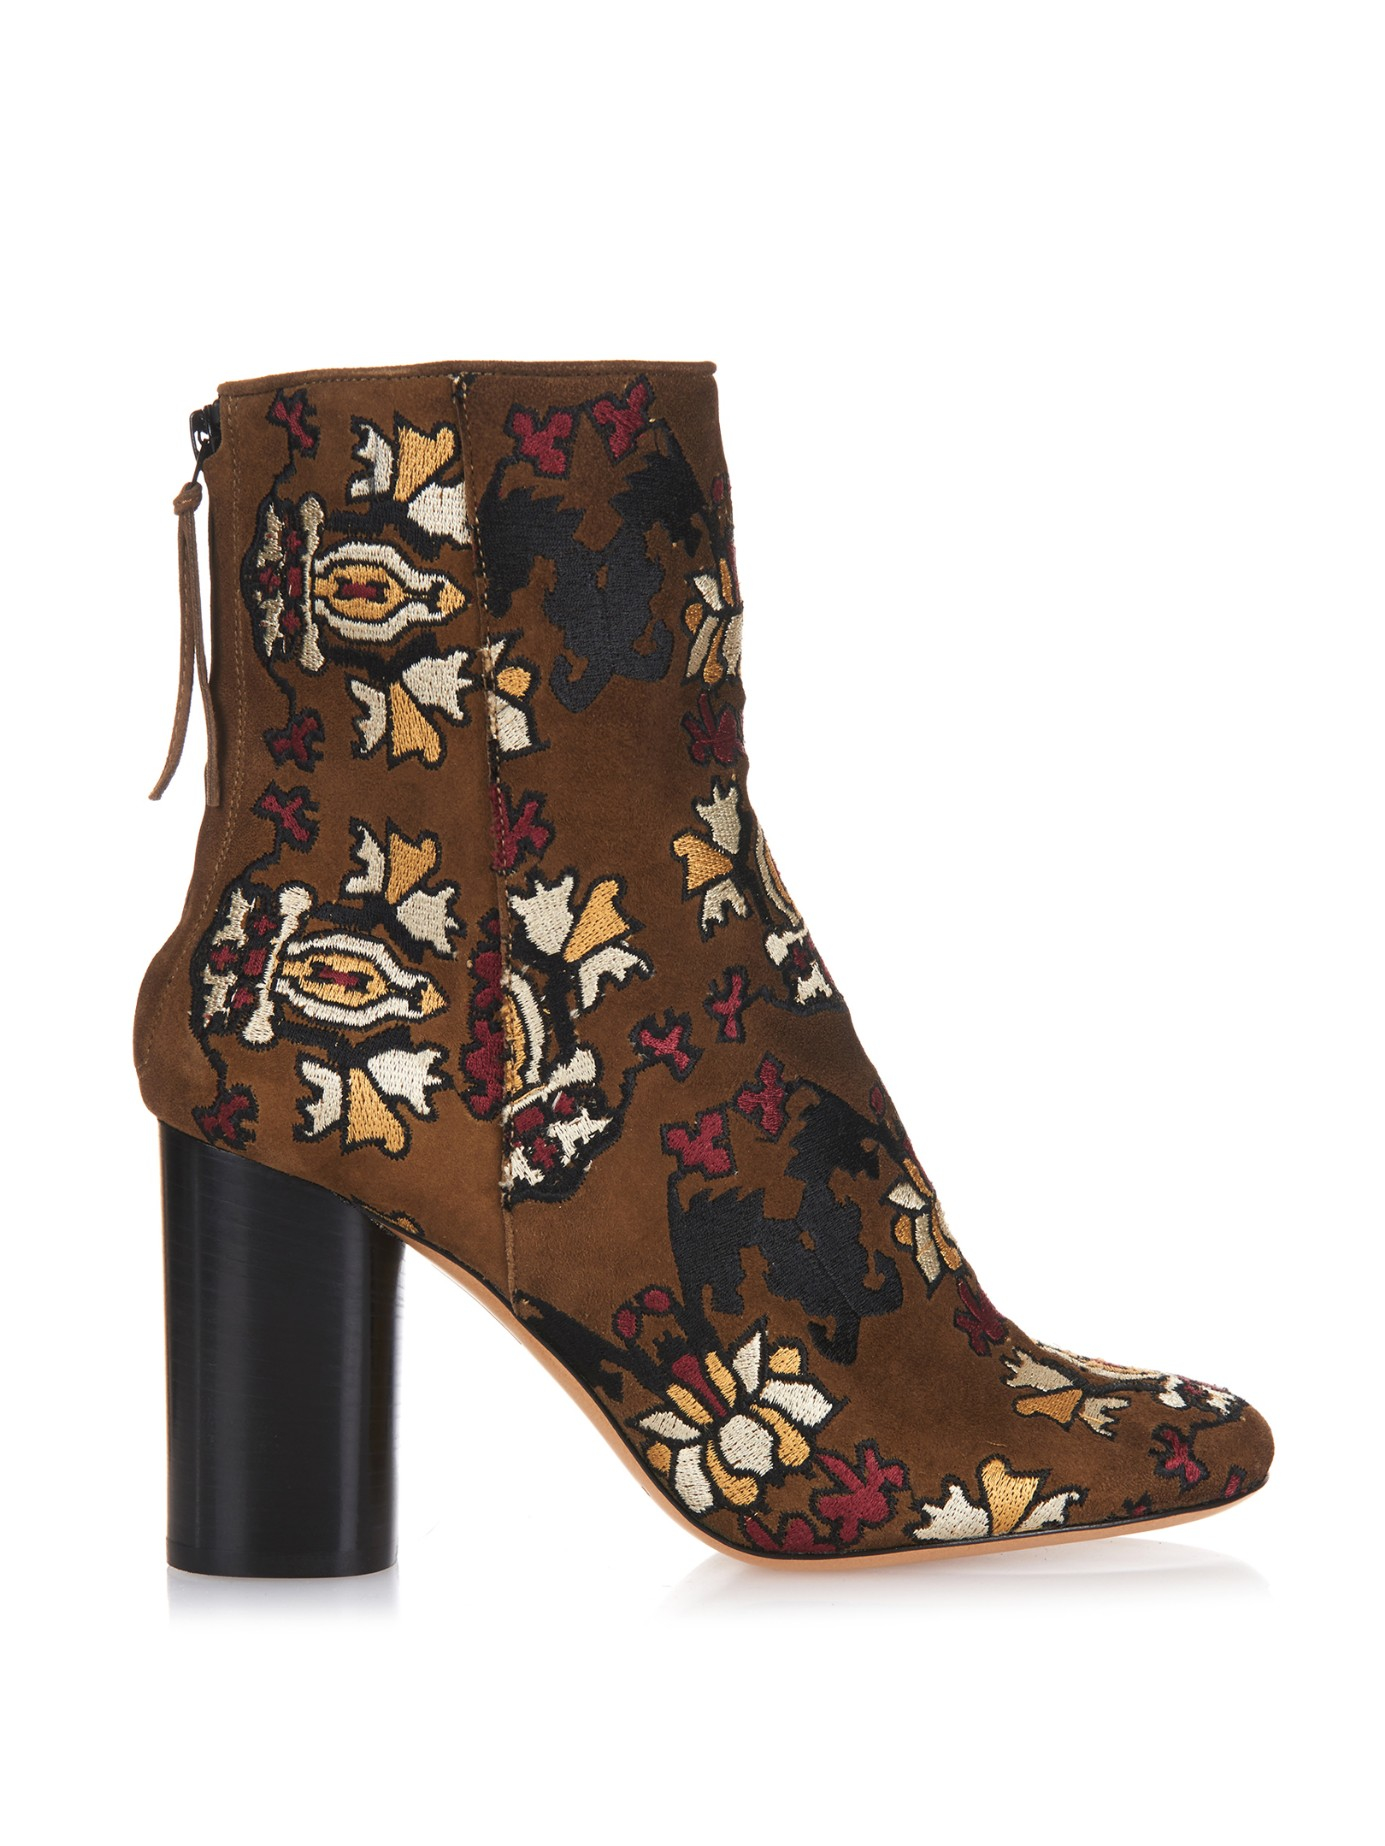 Lyst - Isabel Marant Guya Embroidered Suede Ankle Boots in